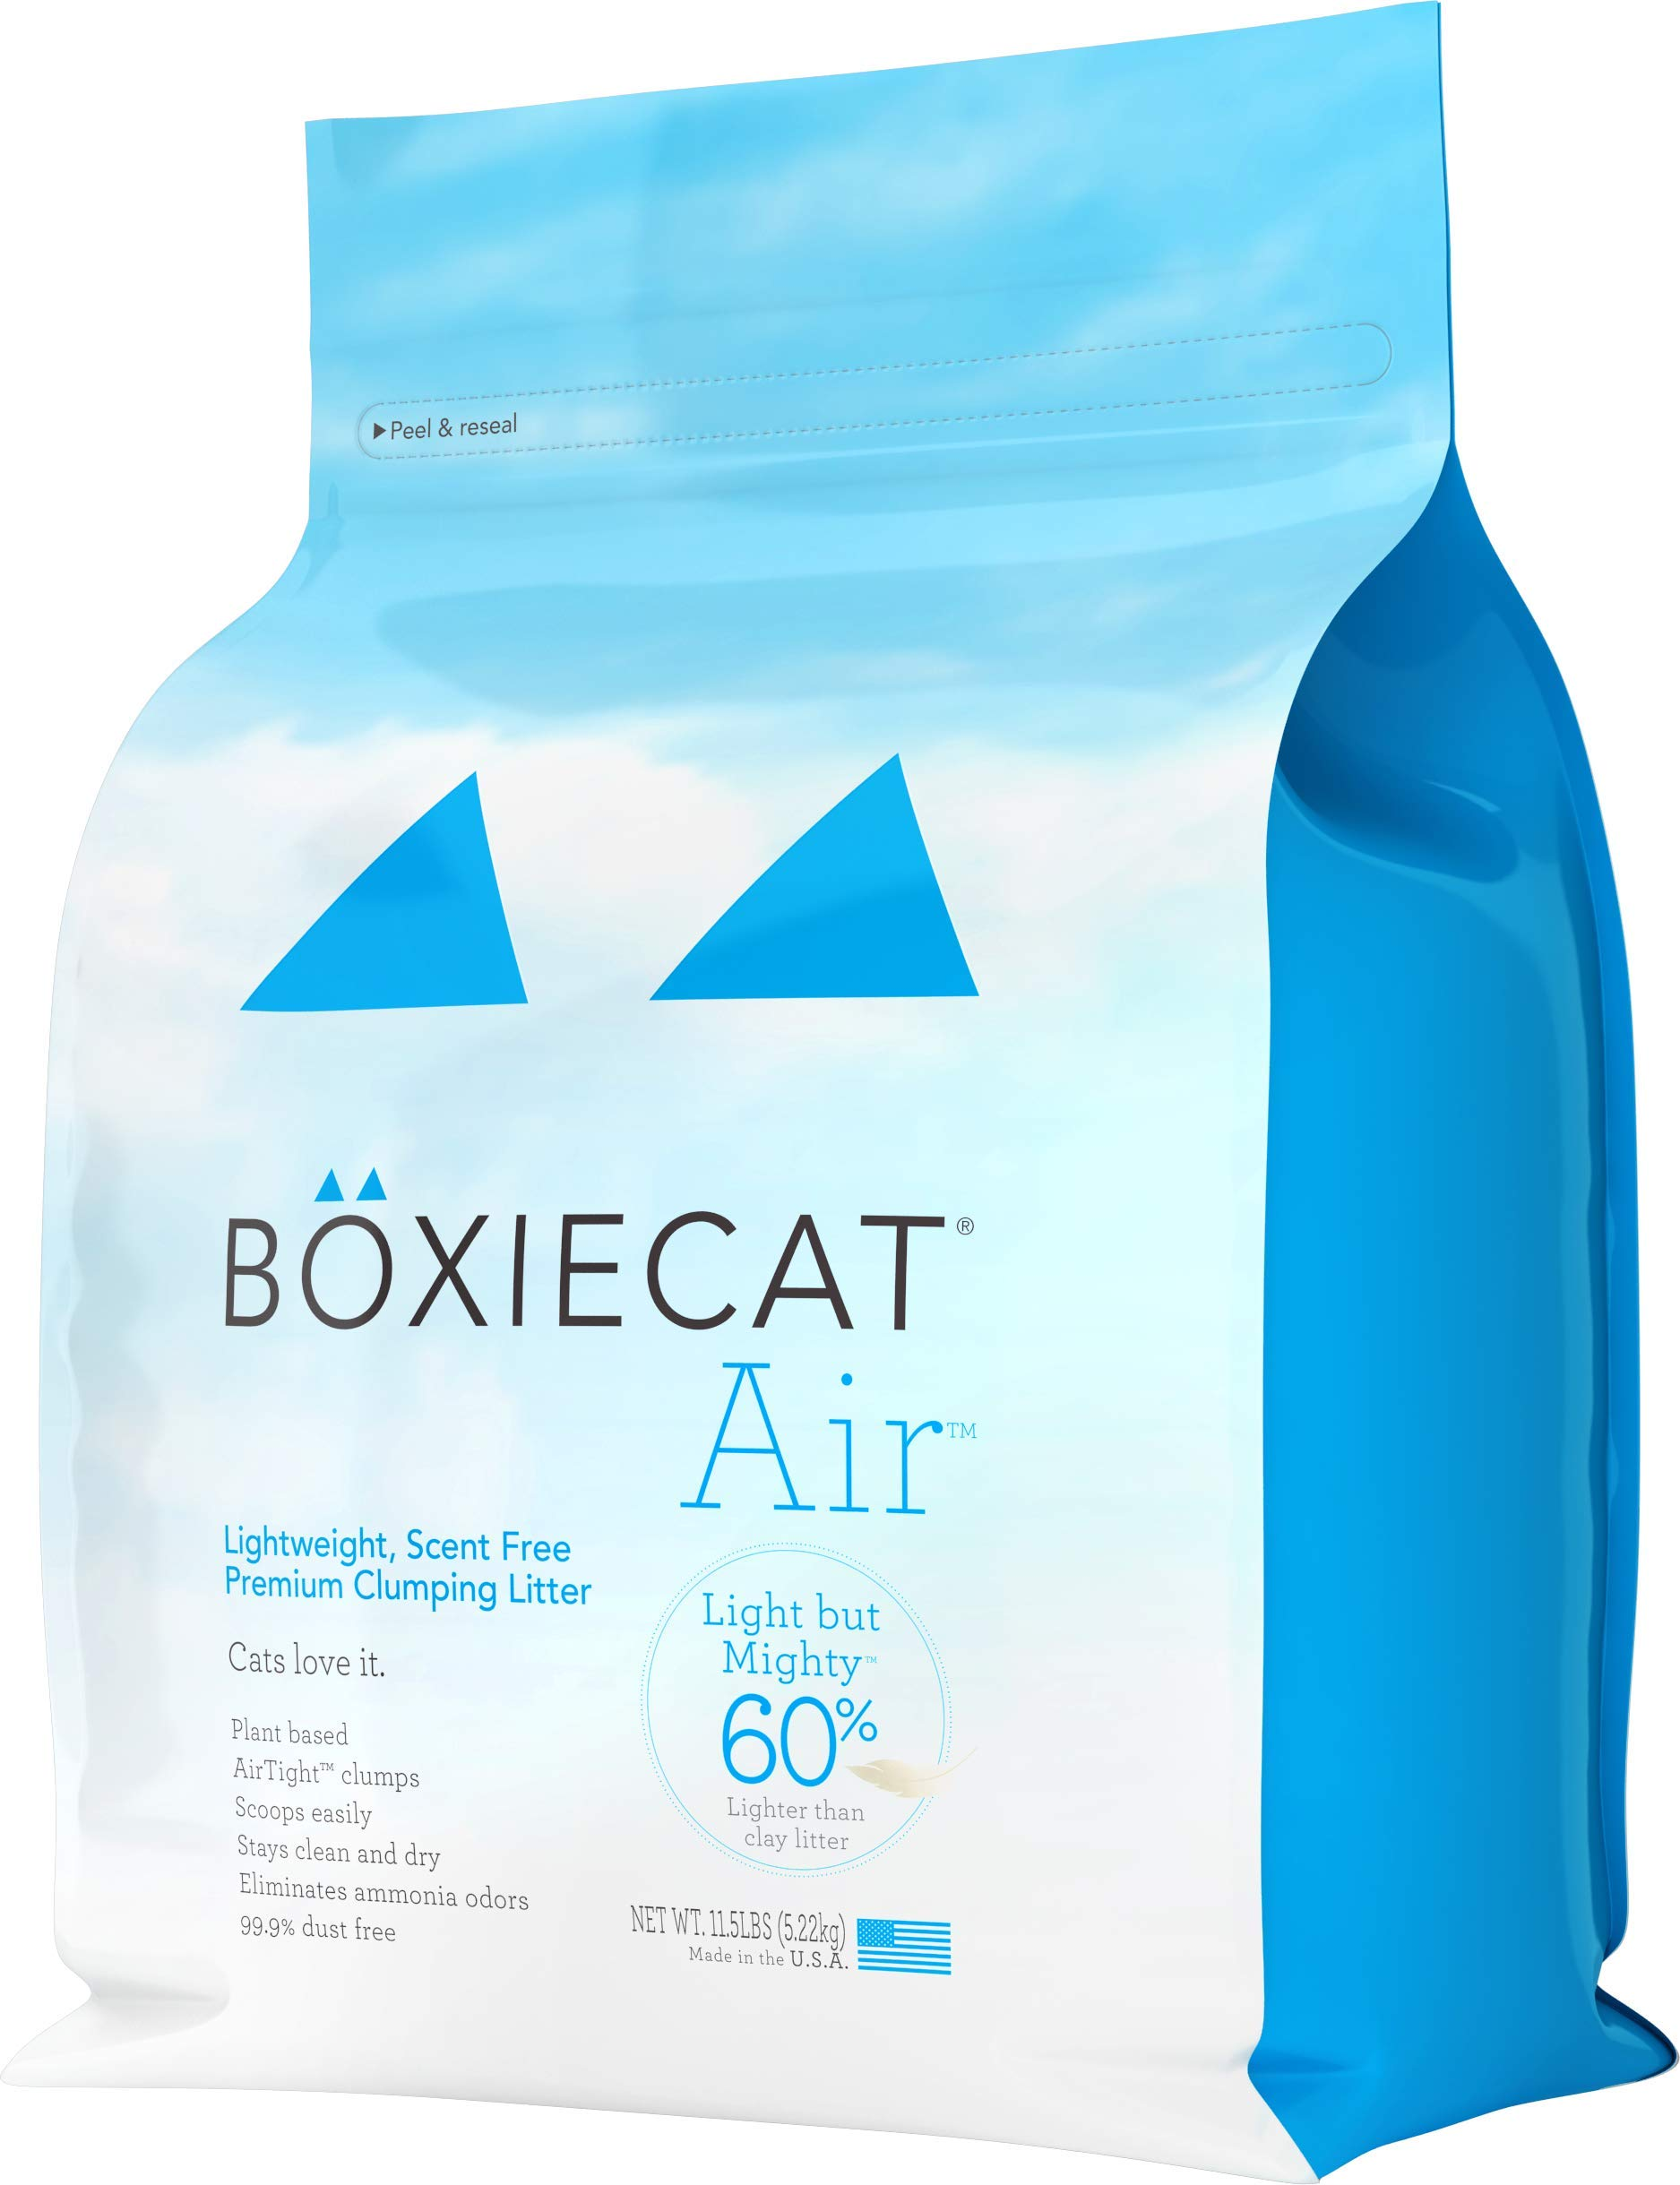 Boxiecat Premium Clumping Cat Litter - Scent Free - Ultra Clean Litter Box Formulas With Longer Lasting Odor Control, Hard Clumping Litter, 99.9% Dust Free